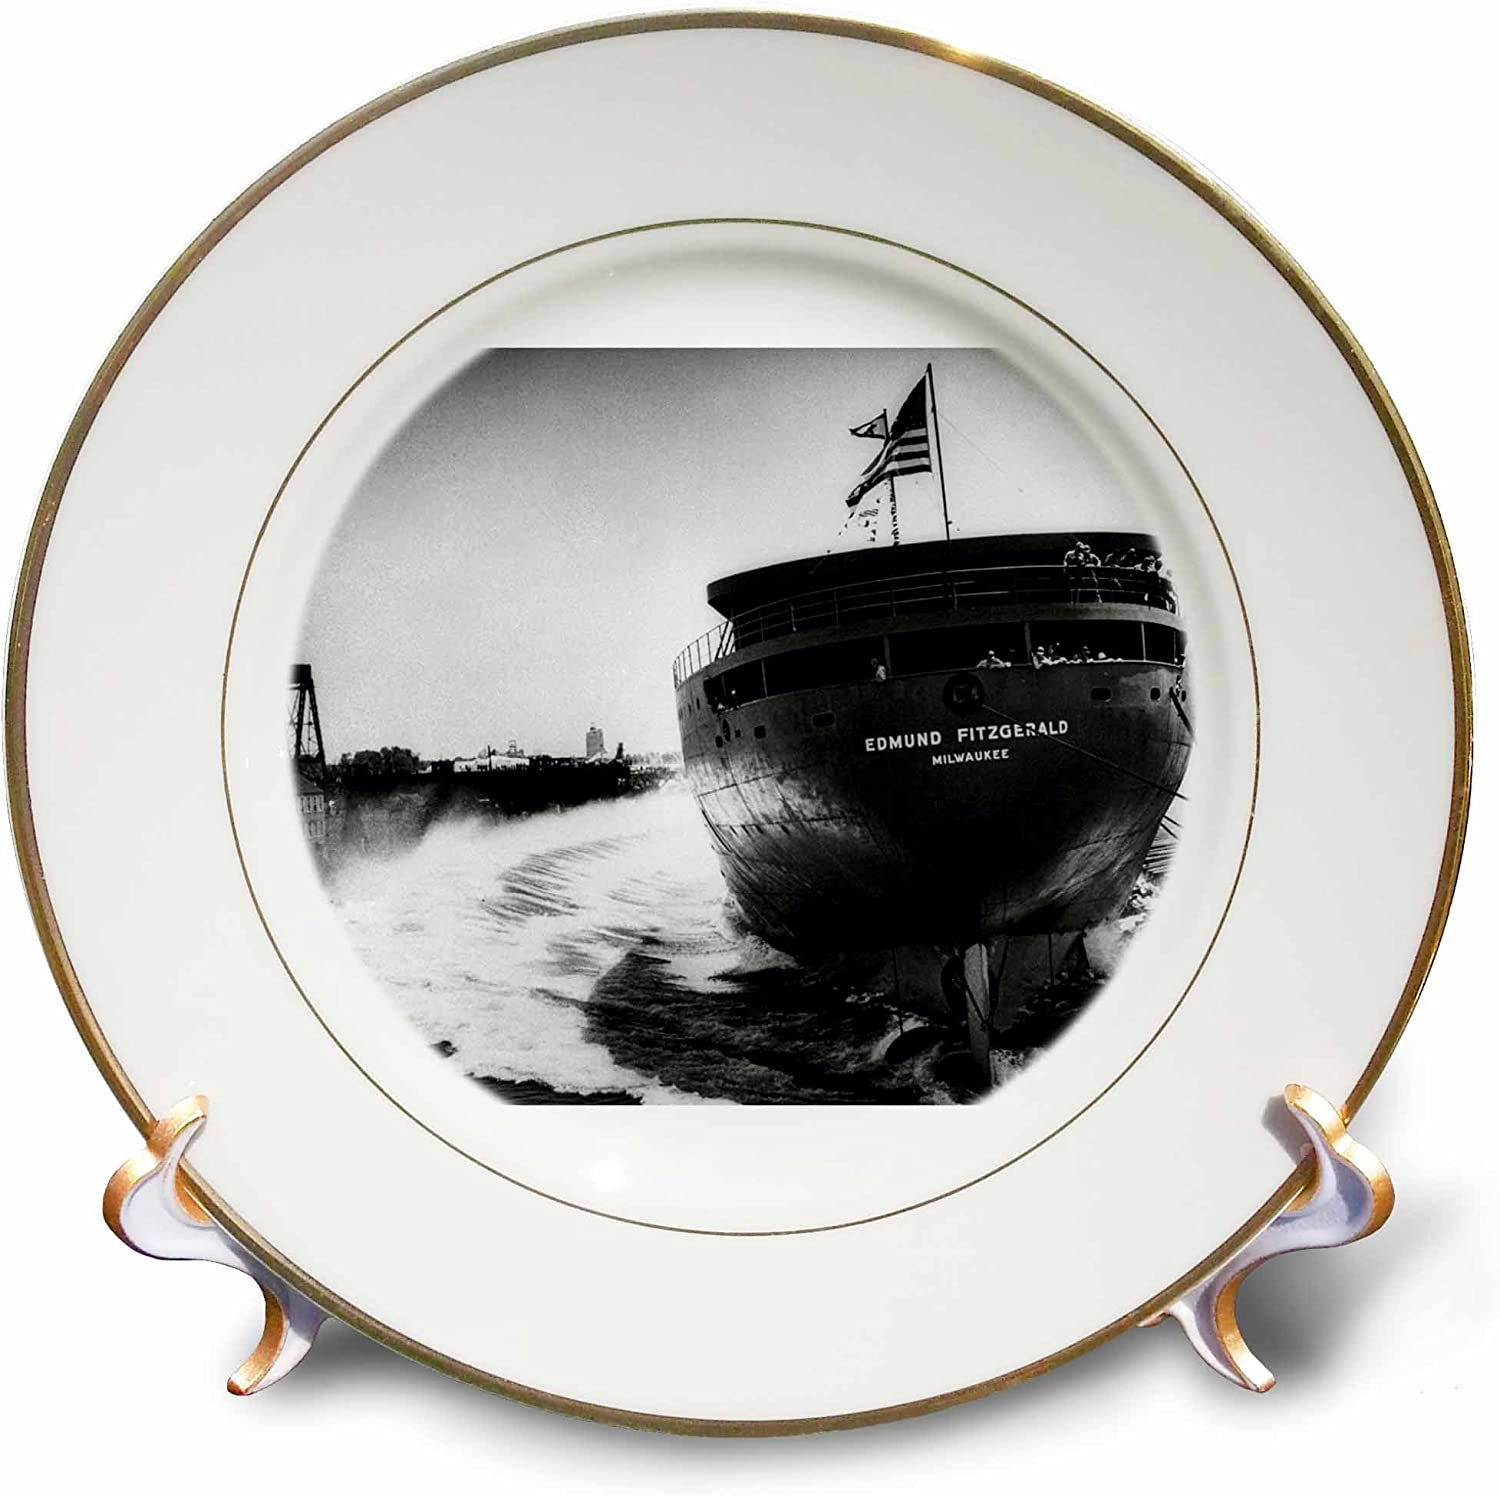 3dRose cp_6817_1 New Save money arrival Launching of Fitzgerald-Porcelain The Edmund Pl